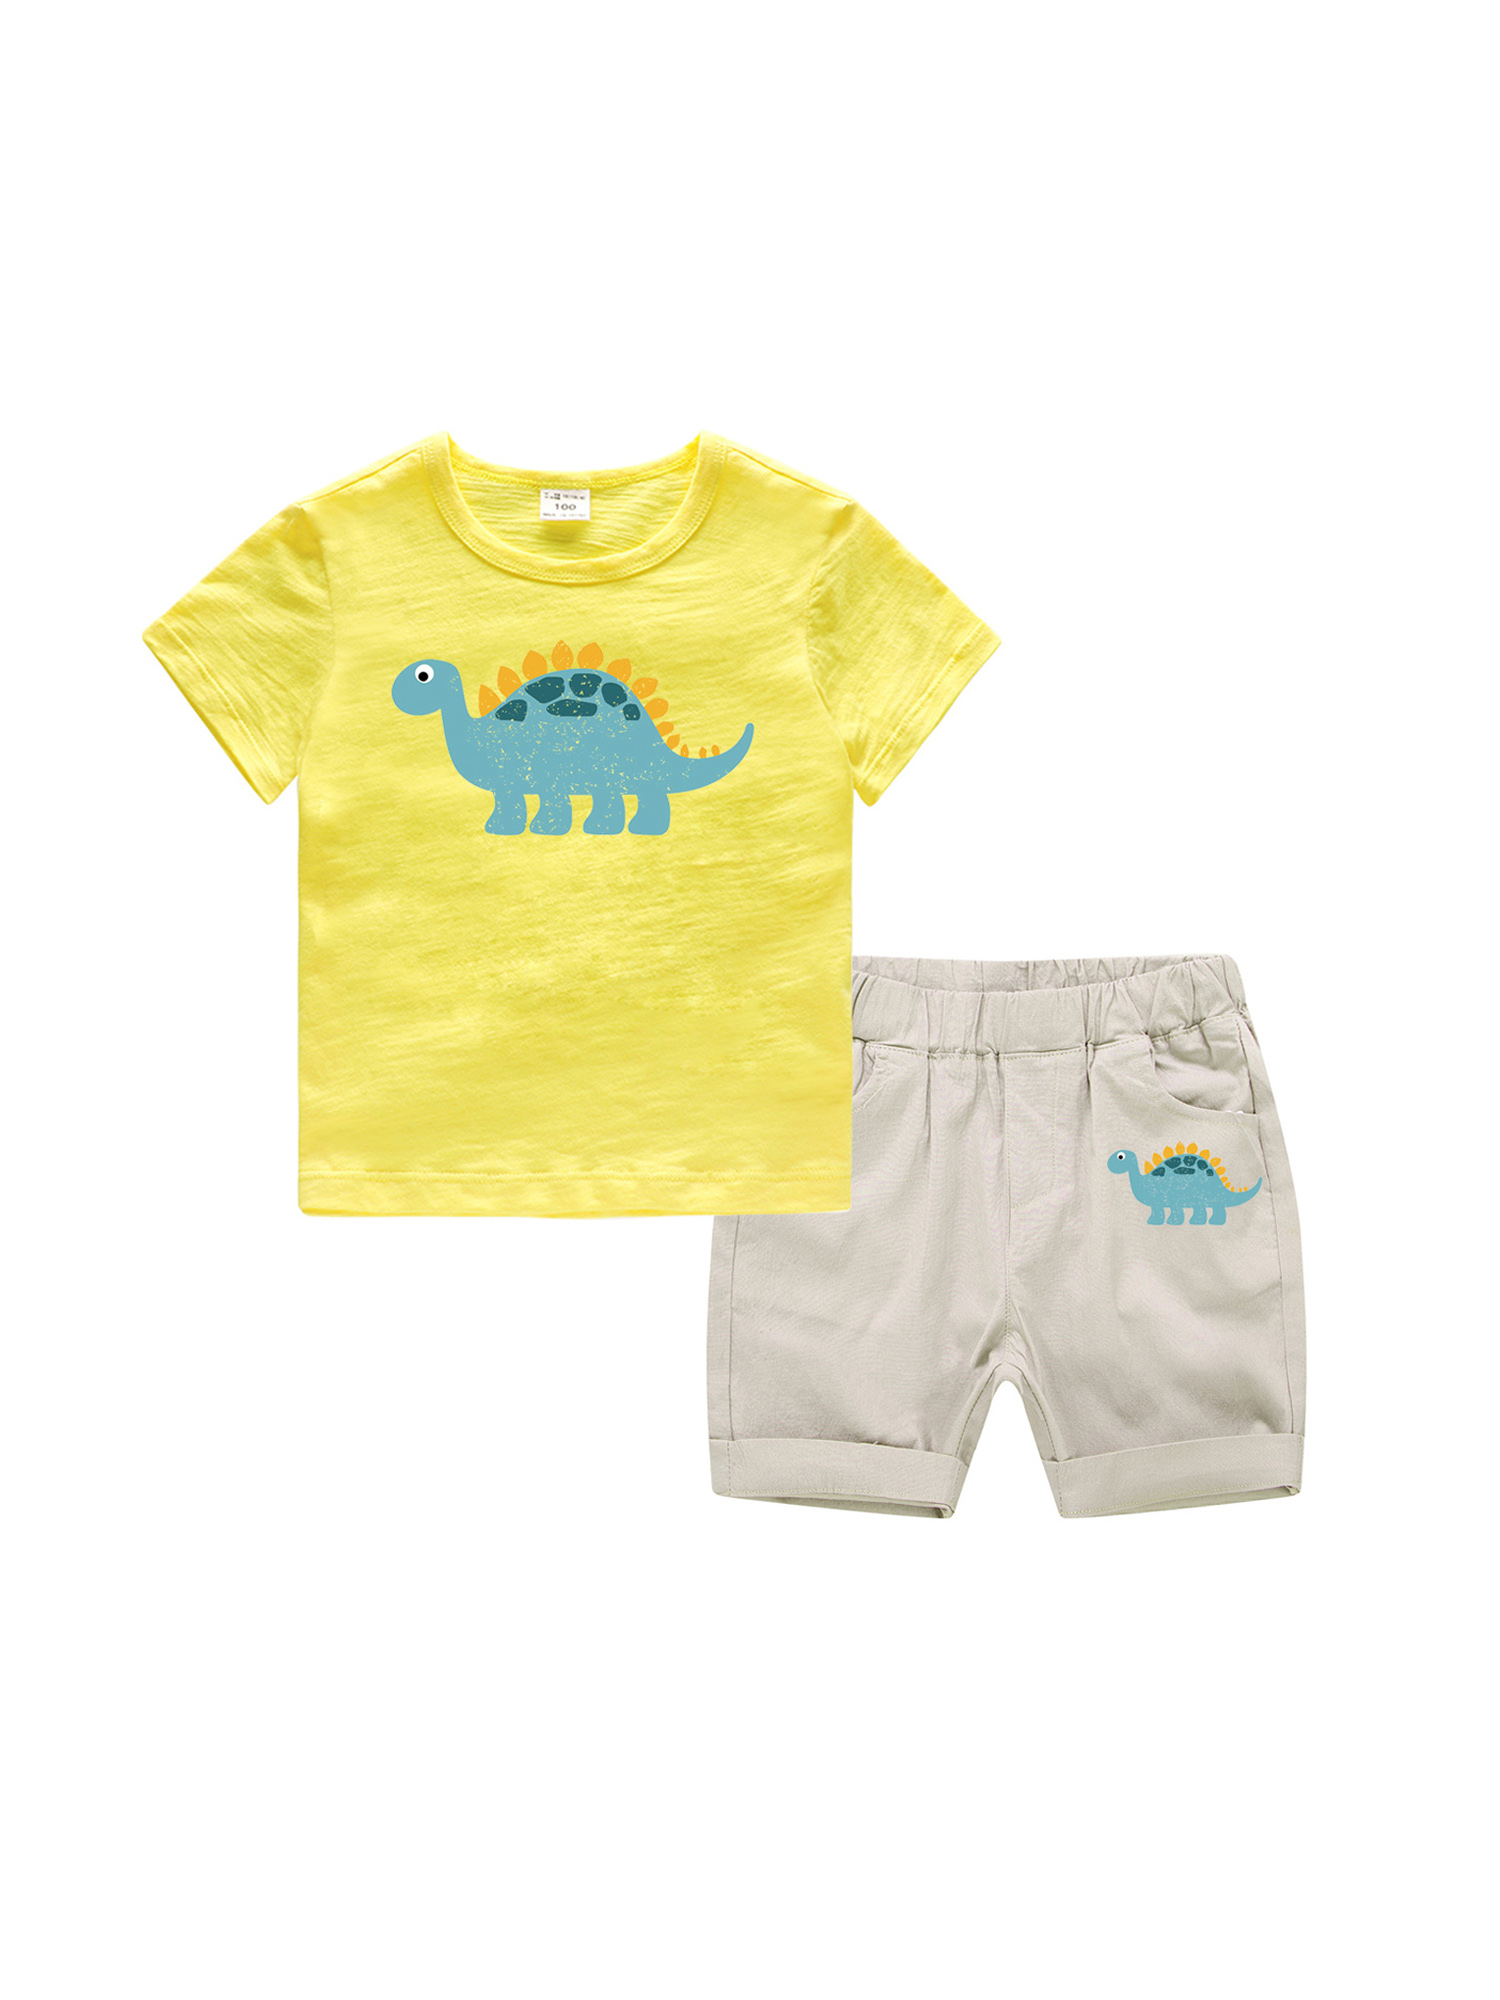 Details about  /One Yellow Star Child/'s Birthday Number One Party Outfit Play Toddler Sweatshirt